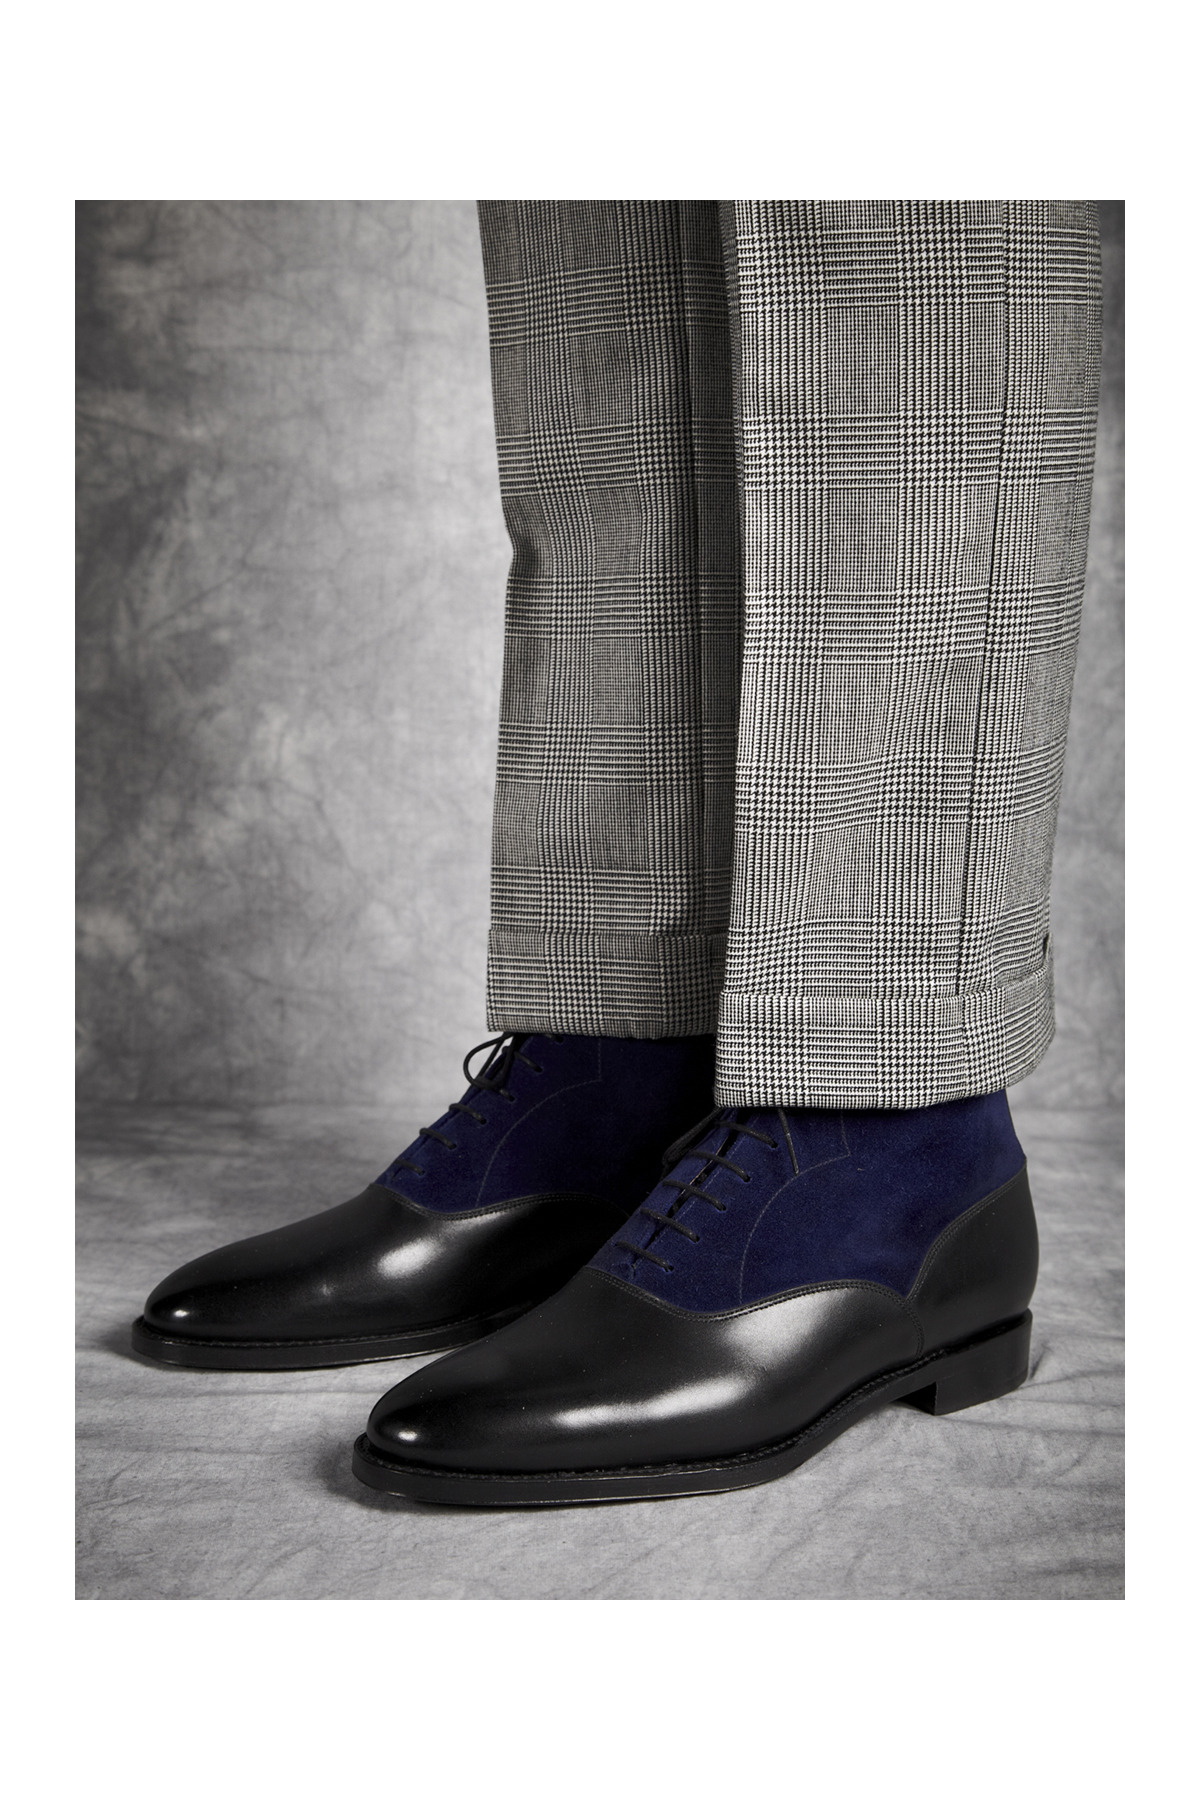 jfitzpatrickfootwear:  Bal Boots with suits? Why not!! Wedgwood in Black calf/Vivid Blue suede…